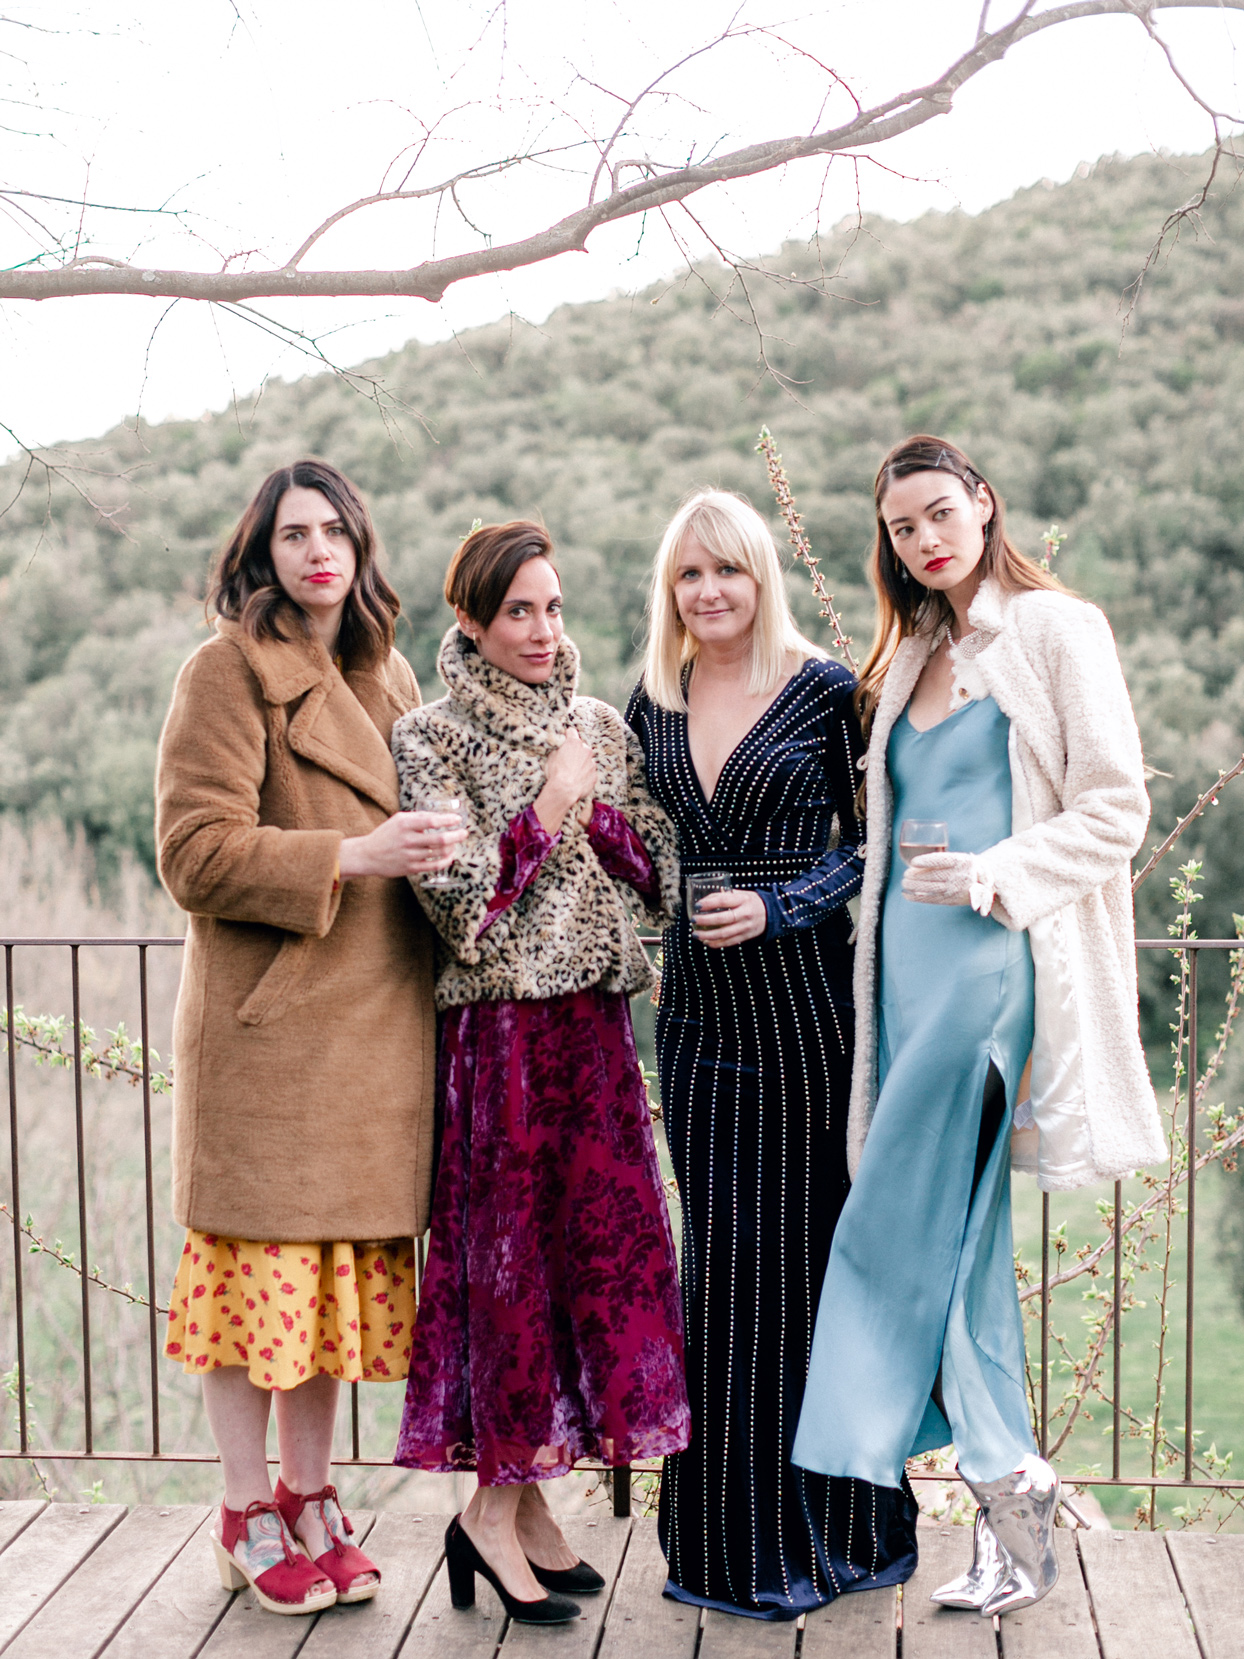 fashionable women wedding guests posing in front of hillside